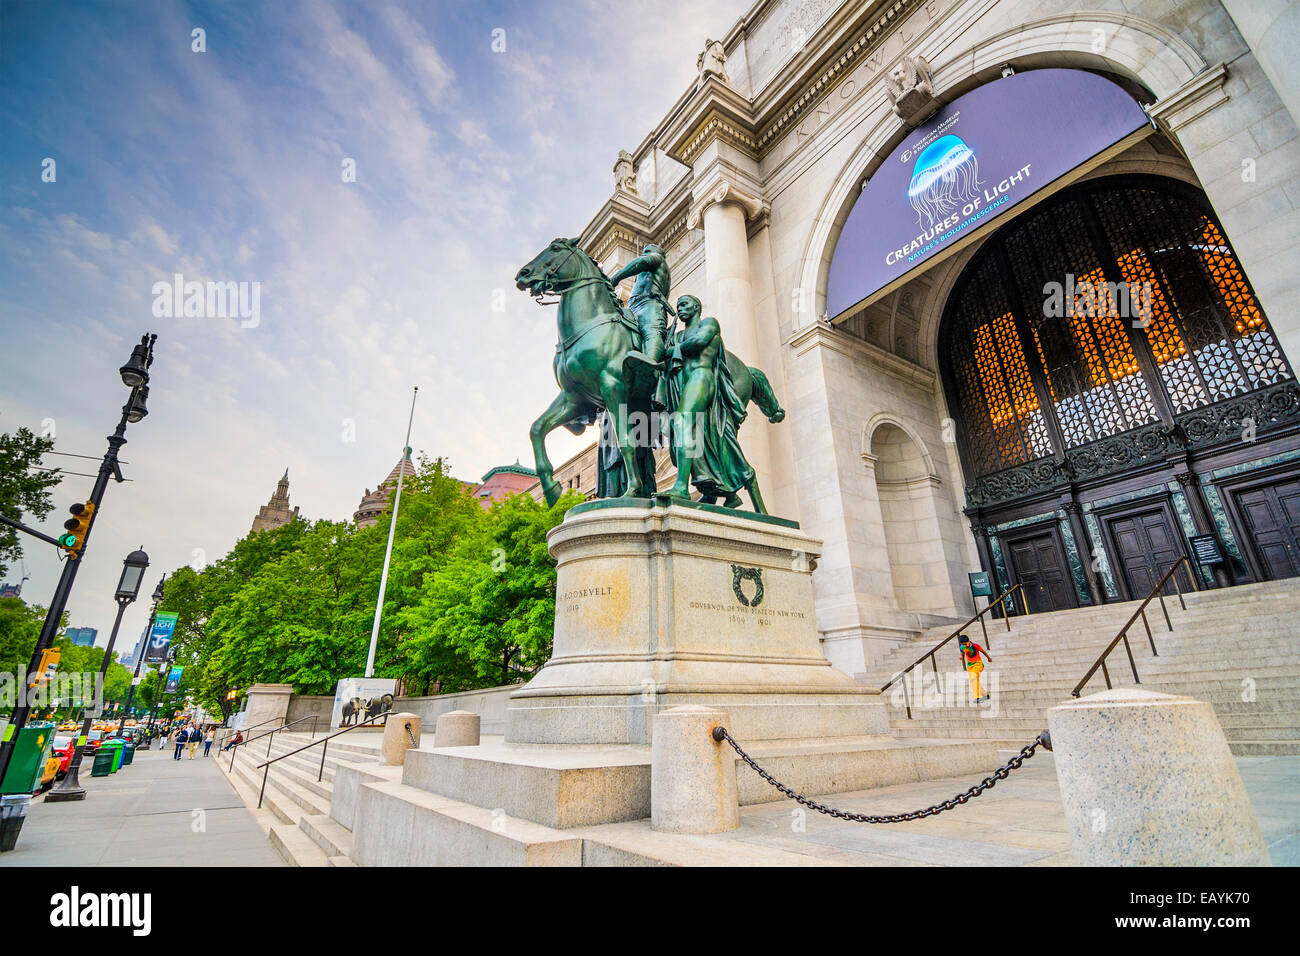 American Museum of Natural History in Manhattan. The museum collections contain over 32 million specimens. - Stock Image